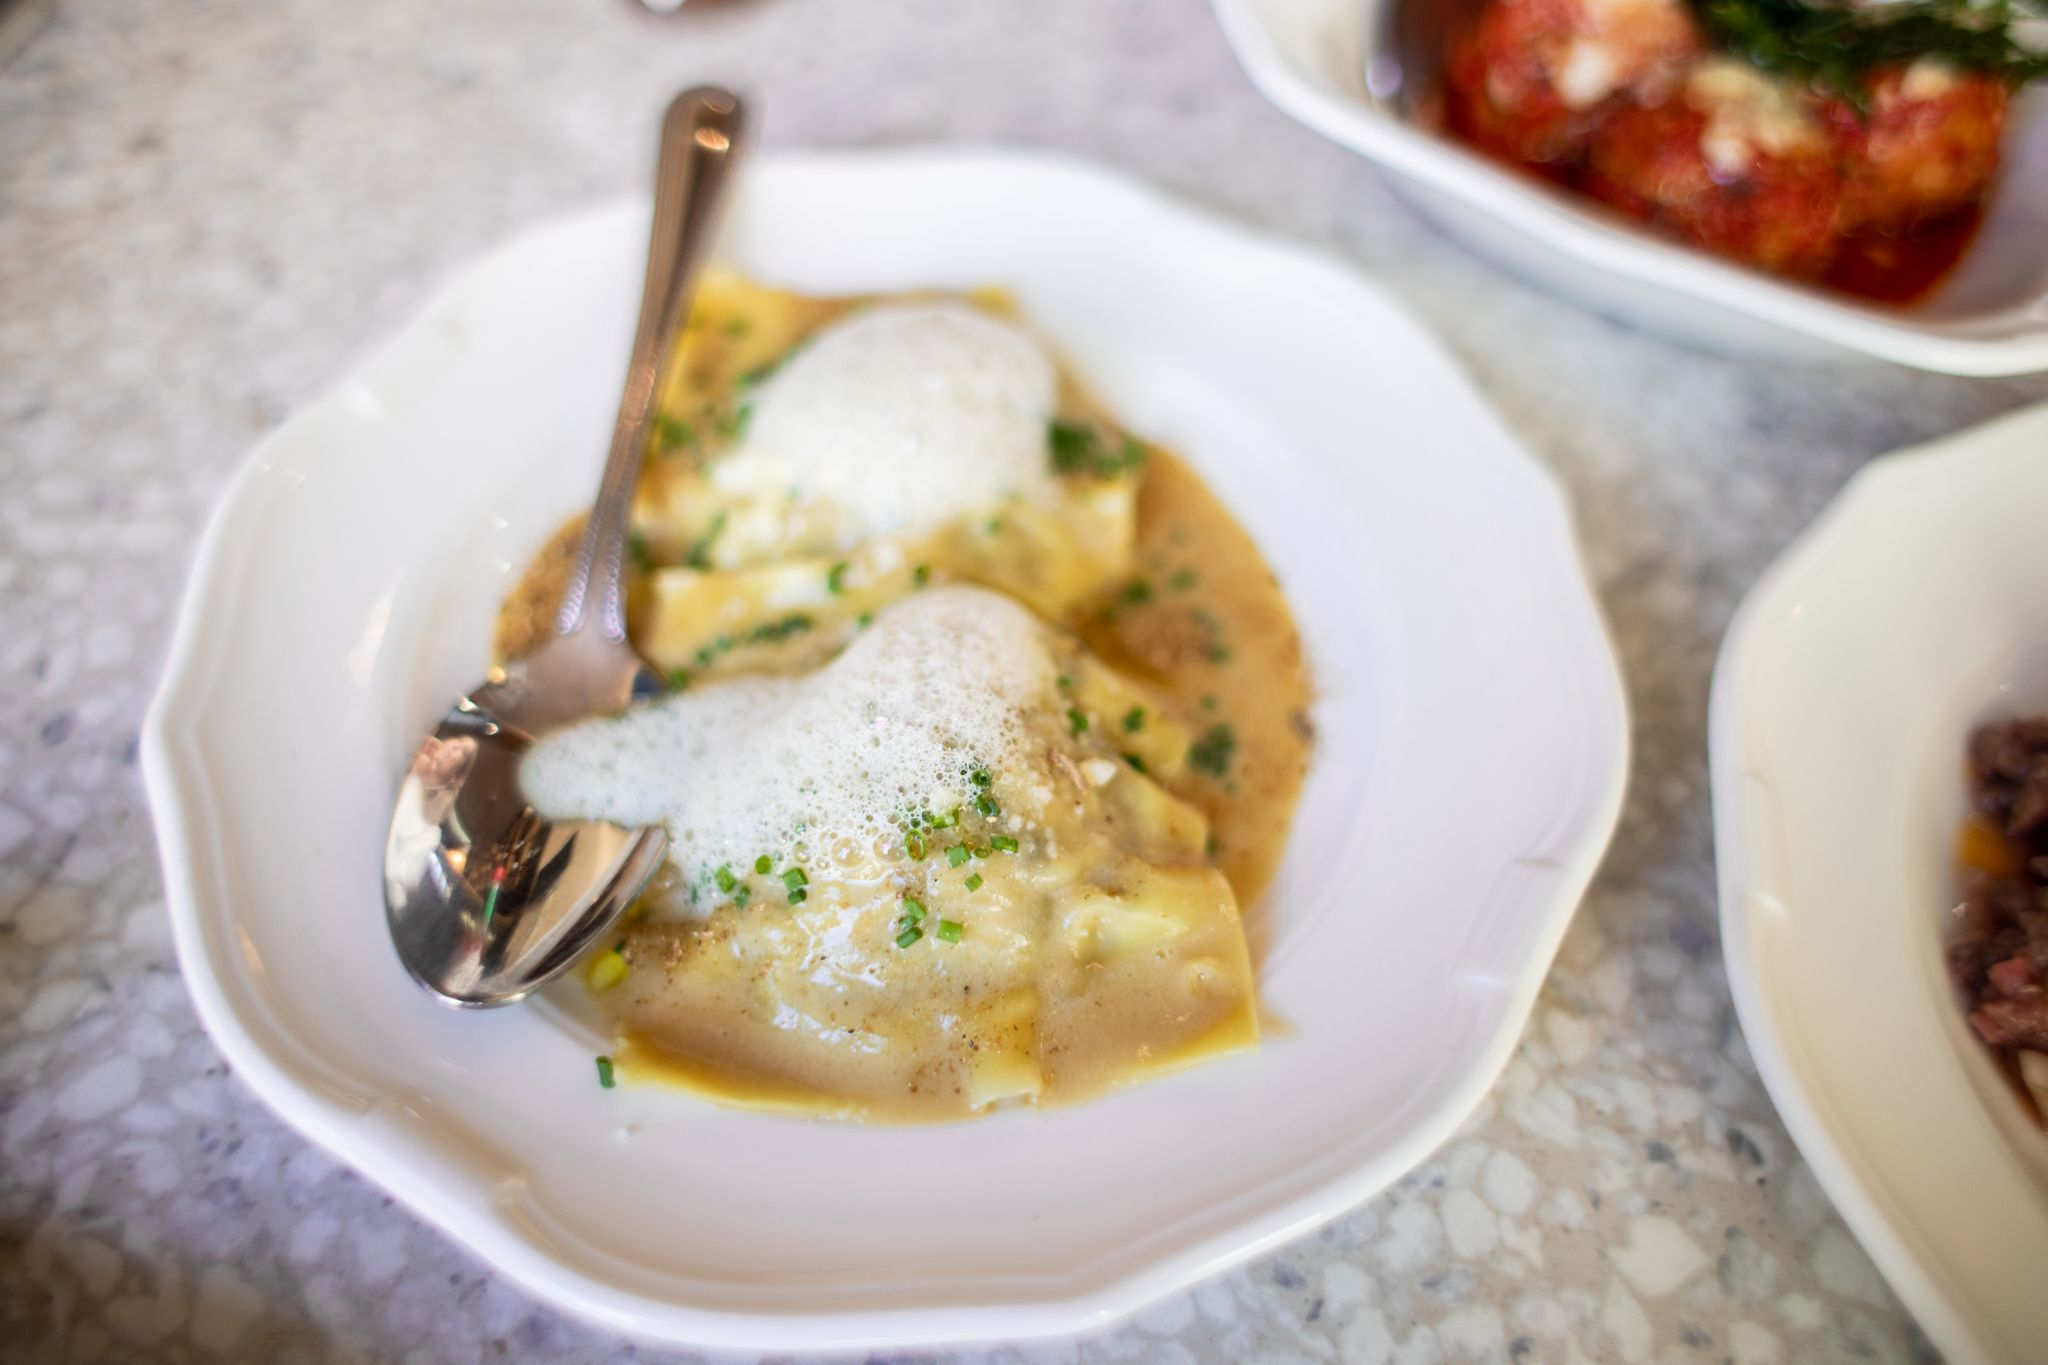 st-vincent-newcastle-restaurant-review-north-east-mushroom-ravioli